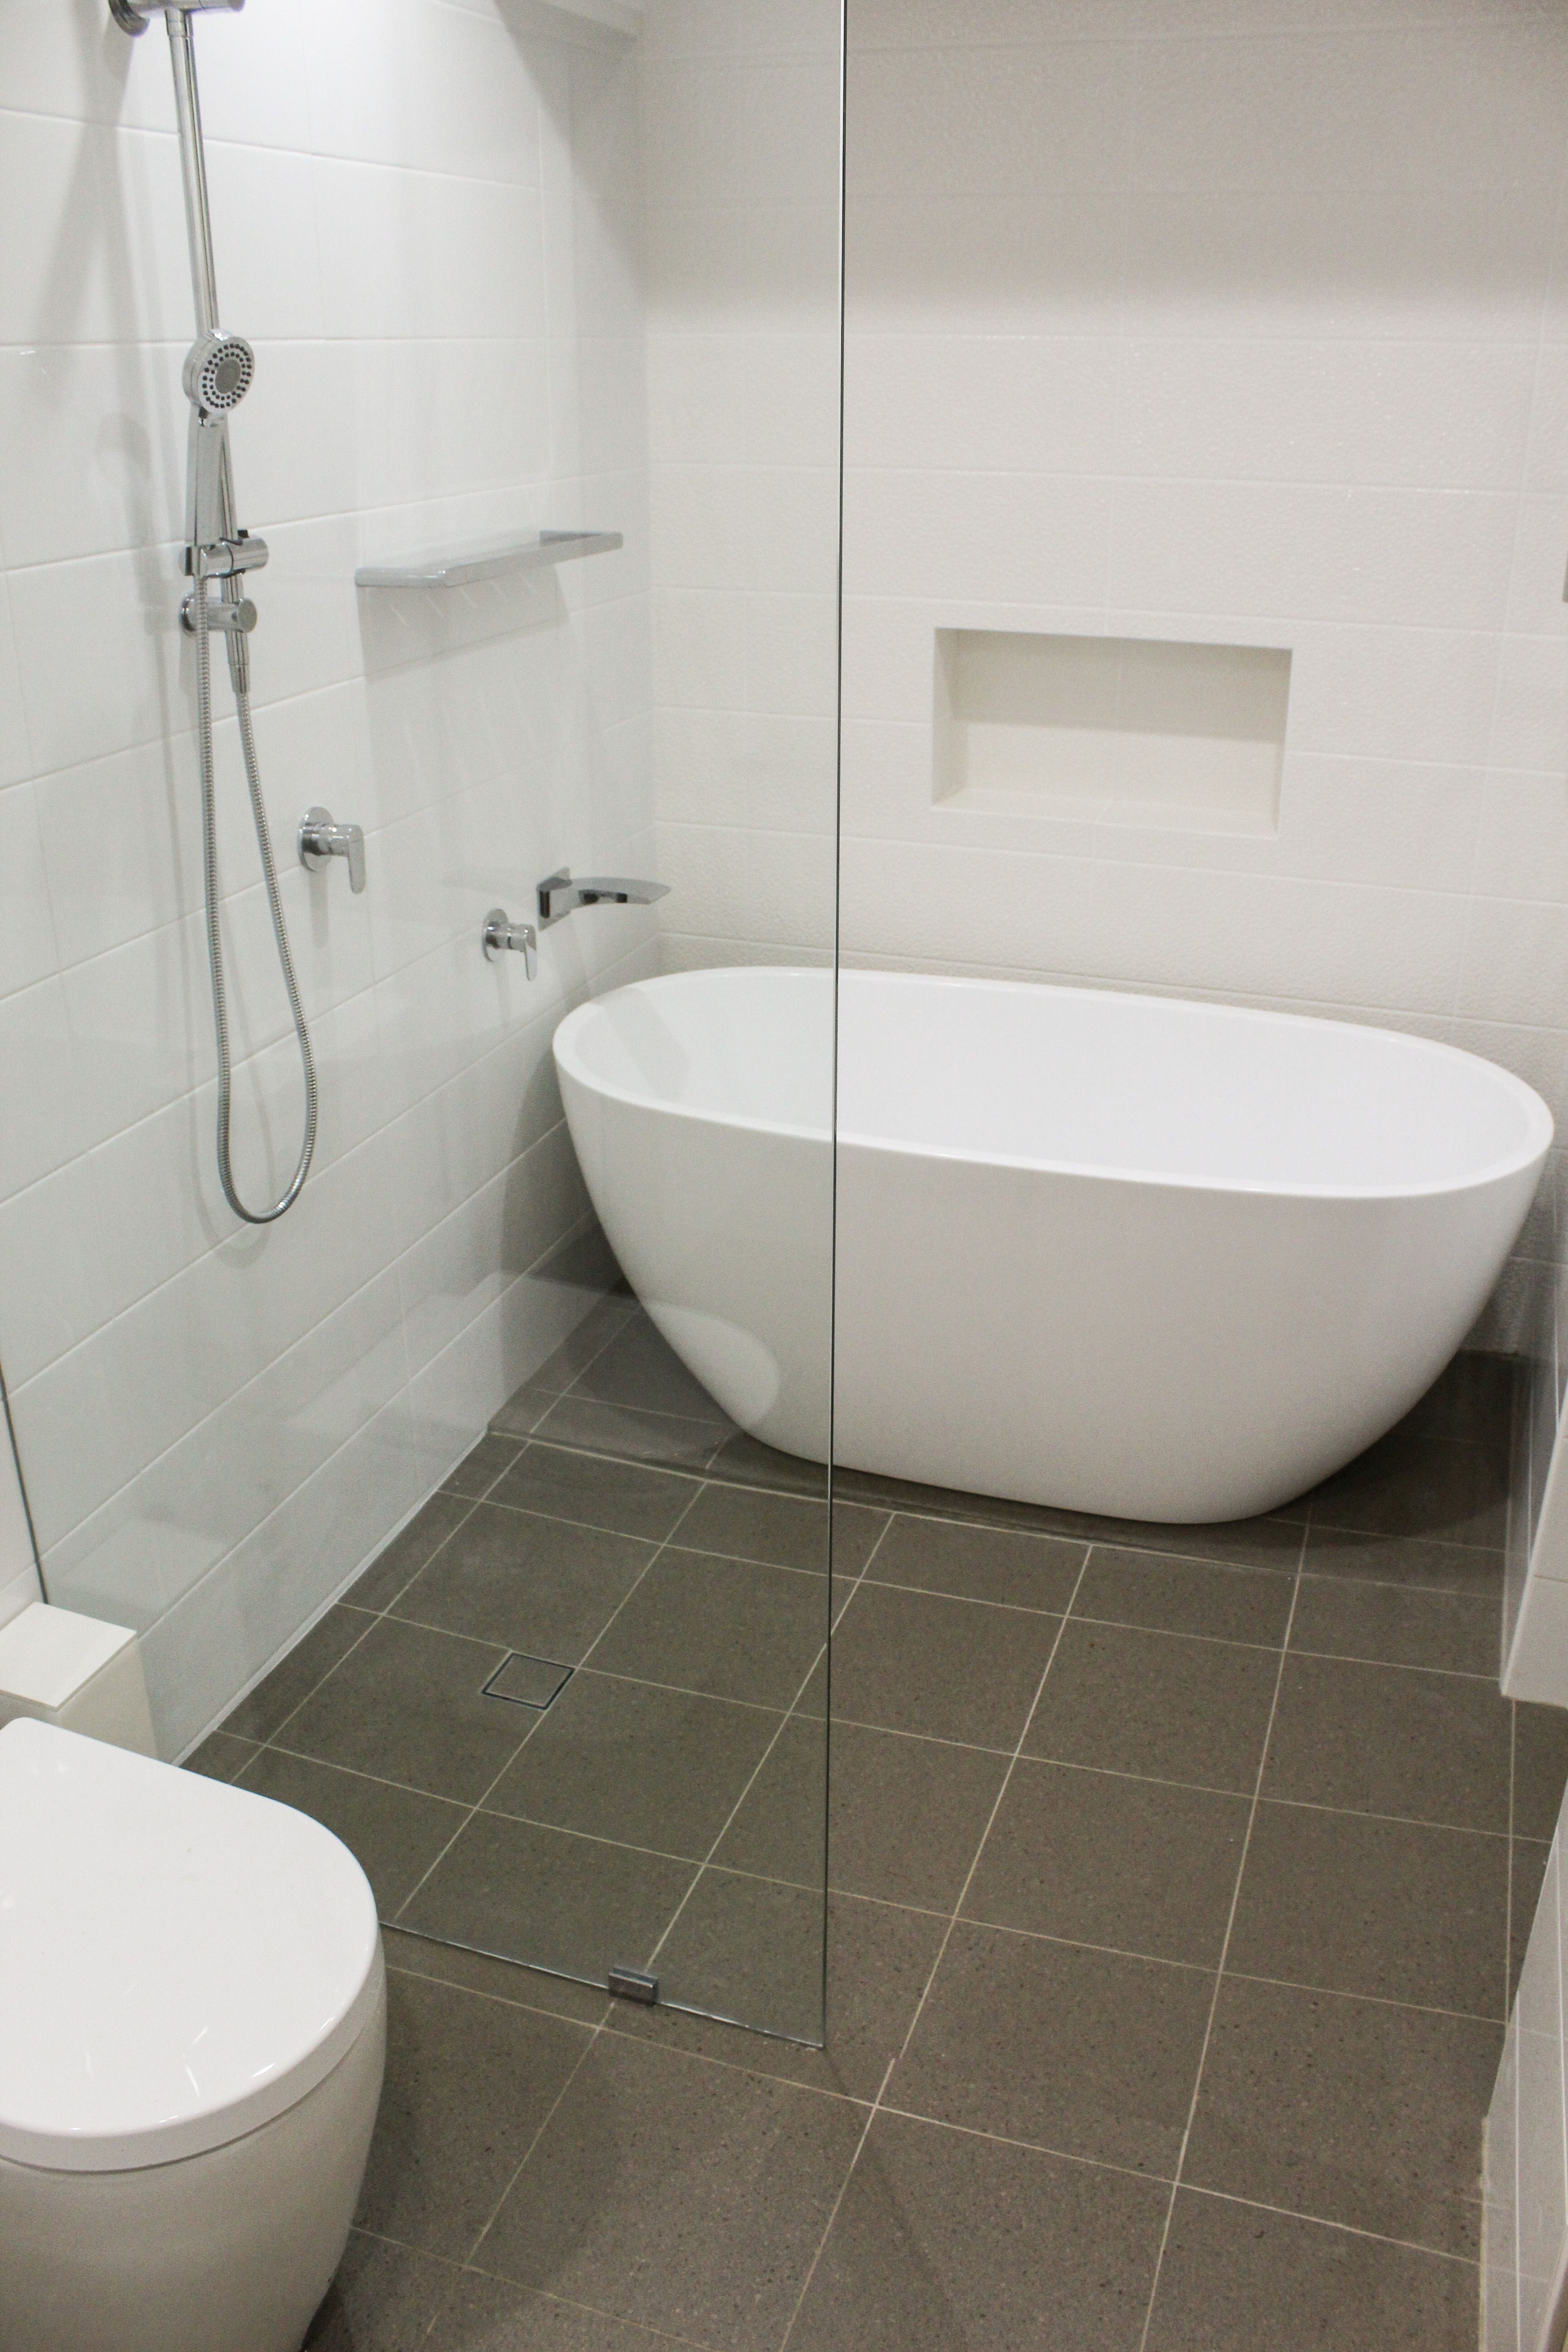 Wet Room - Wet Room Bathrooms - Fixed Panel Shower Screen ... on Wet Room With Freestanding Tub  id=82026